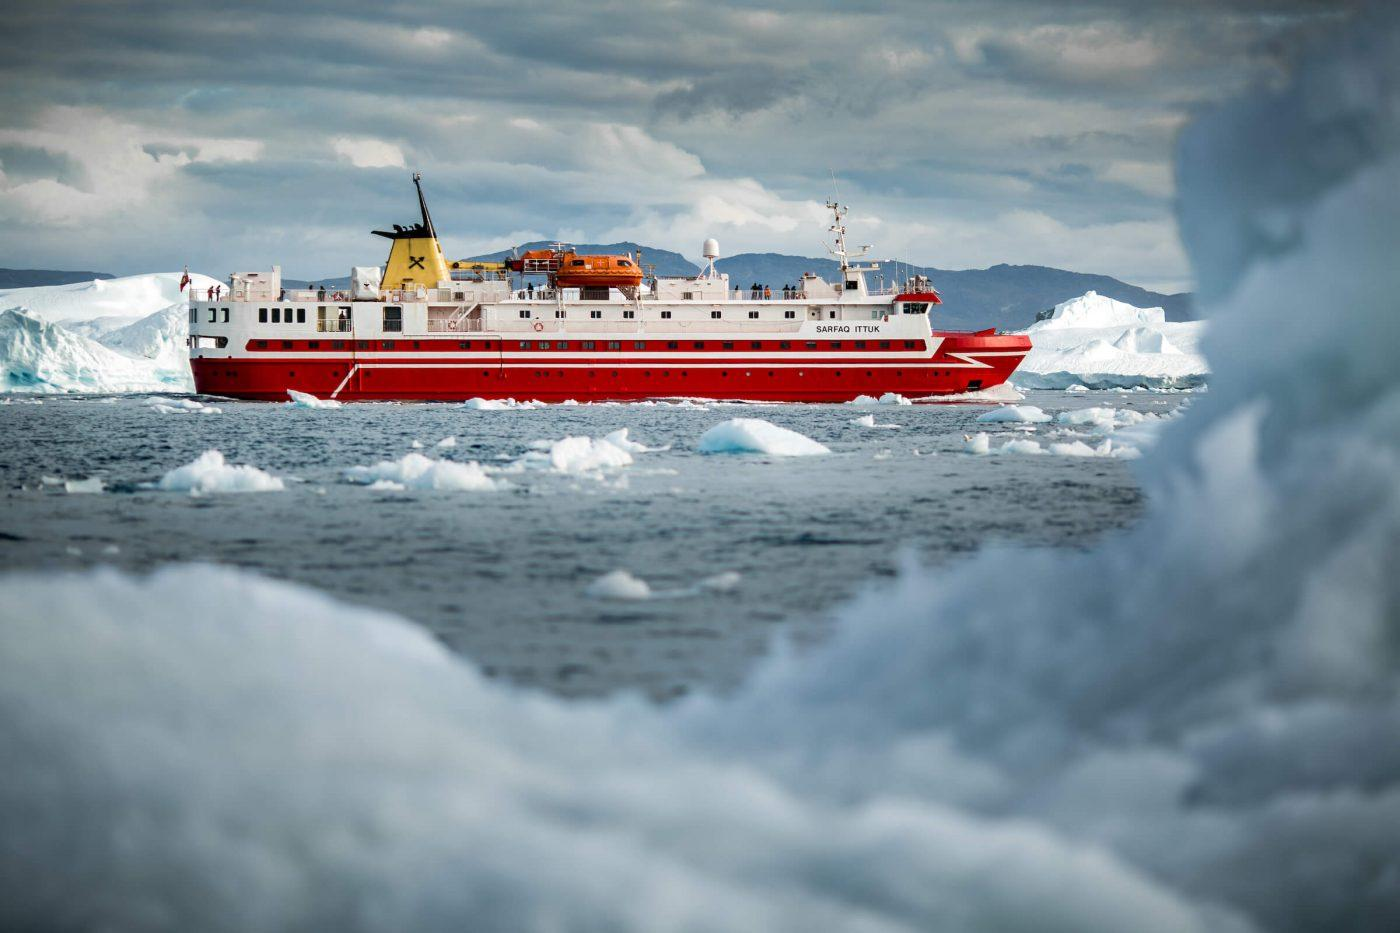 Sarfaq Ittuk cruising in the Disko Bay outside Ilulissat ice fjord in GreenlandGuests in one of the cabins in Sarfaq Ittuk. Visit Greenland